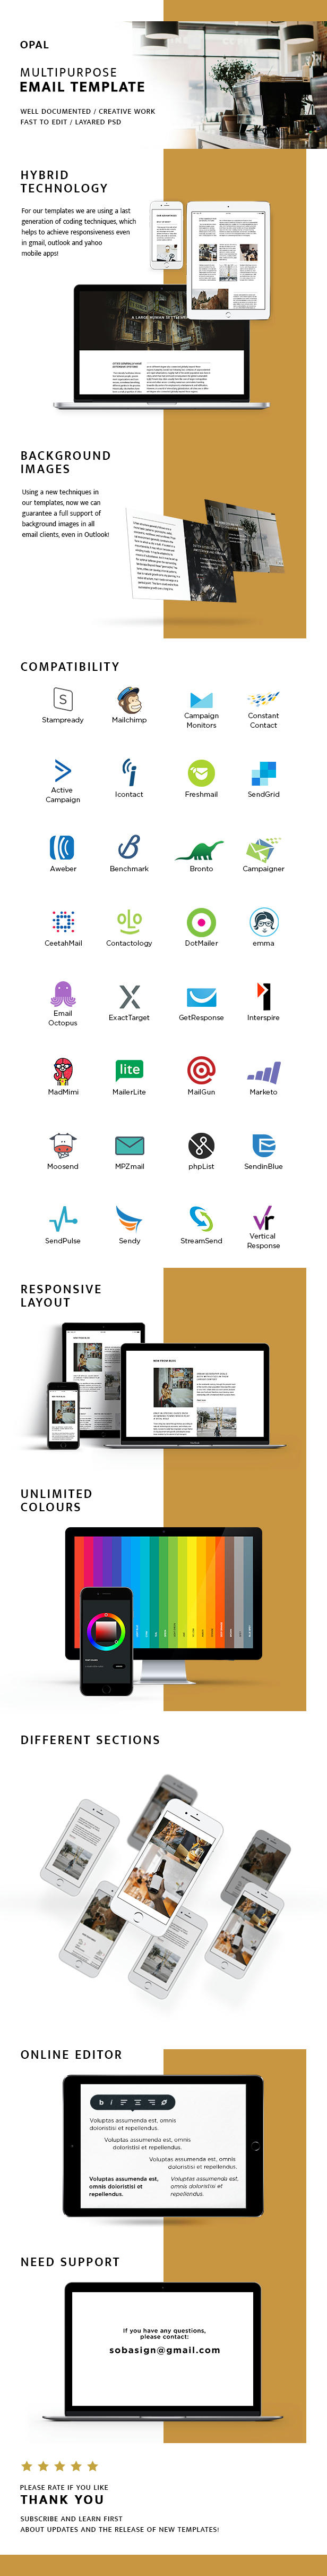 Preview opal – responsive email + stampready builder & mailchimp (email templates) Opal – Responsive Email + StampReady Builder & Mailchimp (Email Templates) w6f5wlbweaf78cdzg